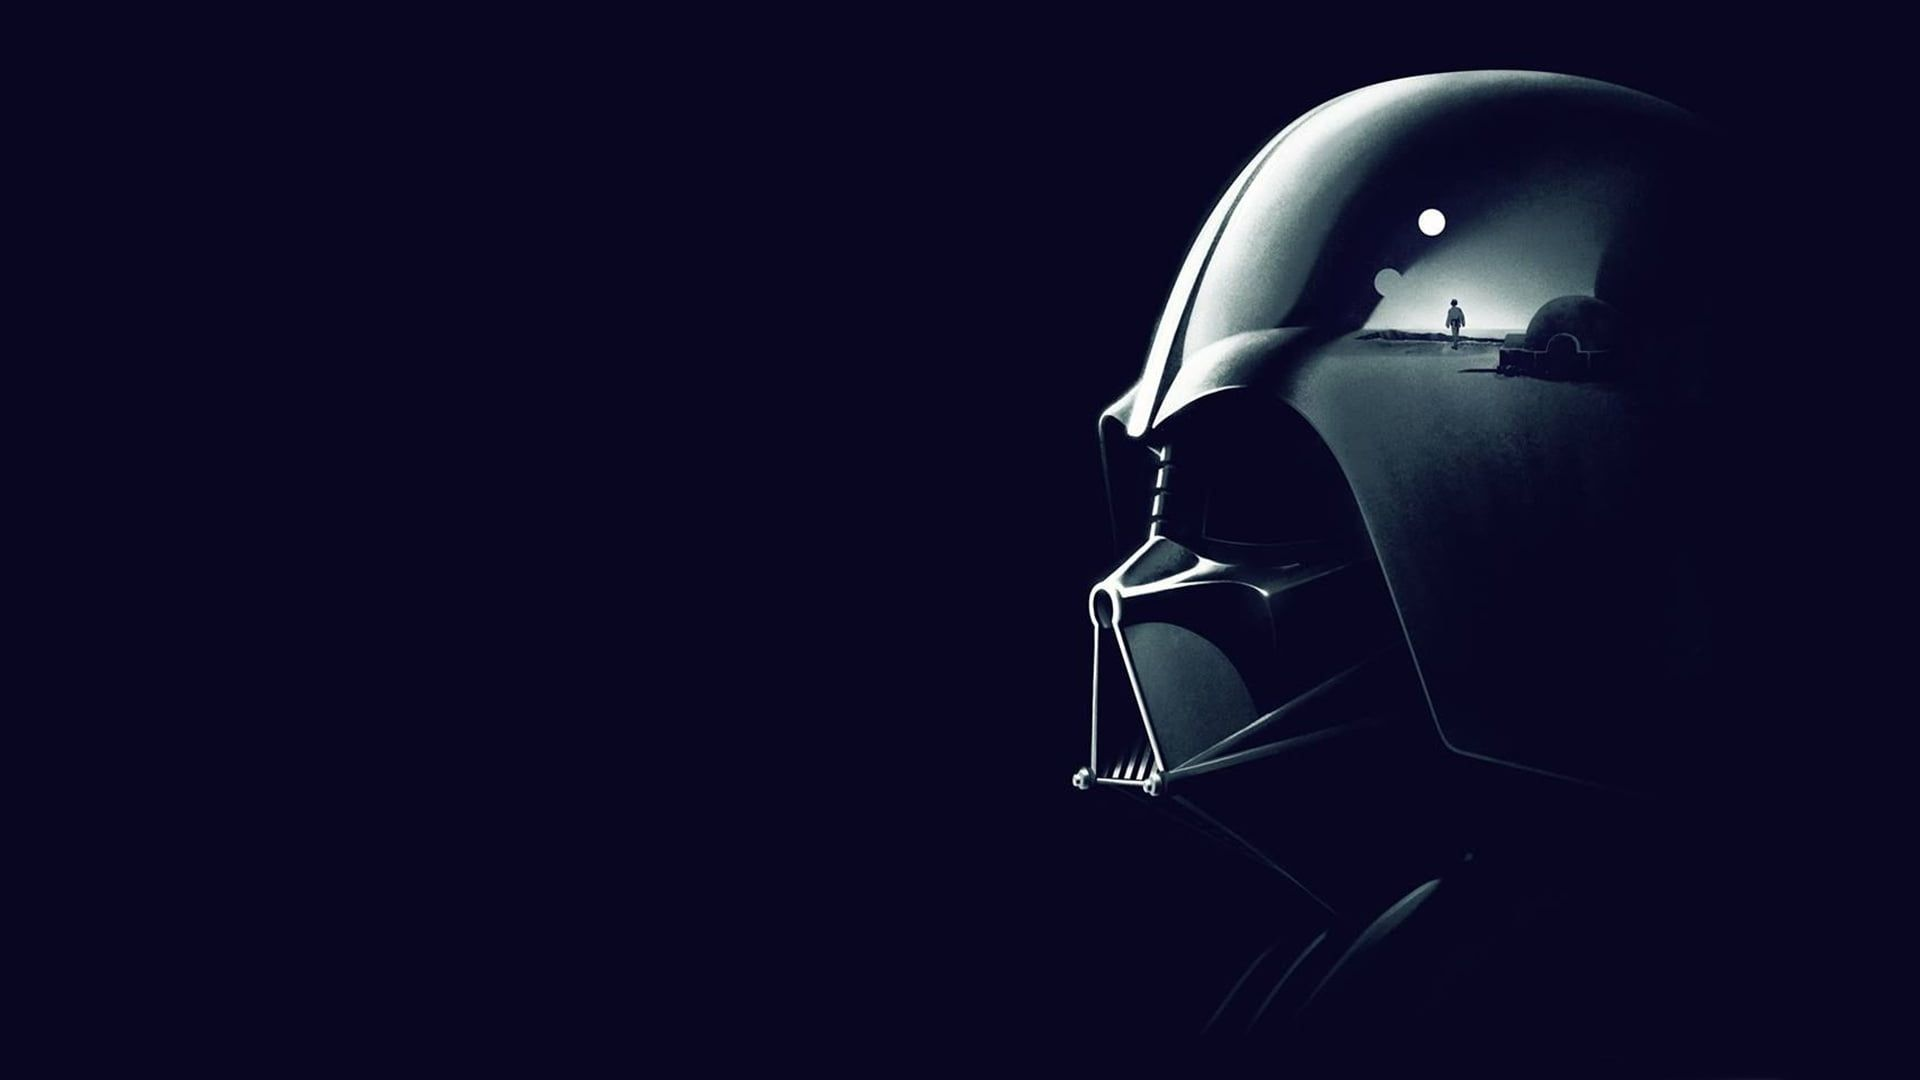 Star Wars Darth Vader Wallpaper Star Wars Darth Vader Movies Anakin Skywalker 1080p Wallpaper Darth Vader Wallpaper Star Wars Wallpaper Star Wars Background